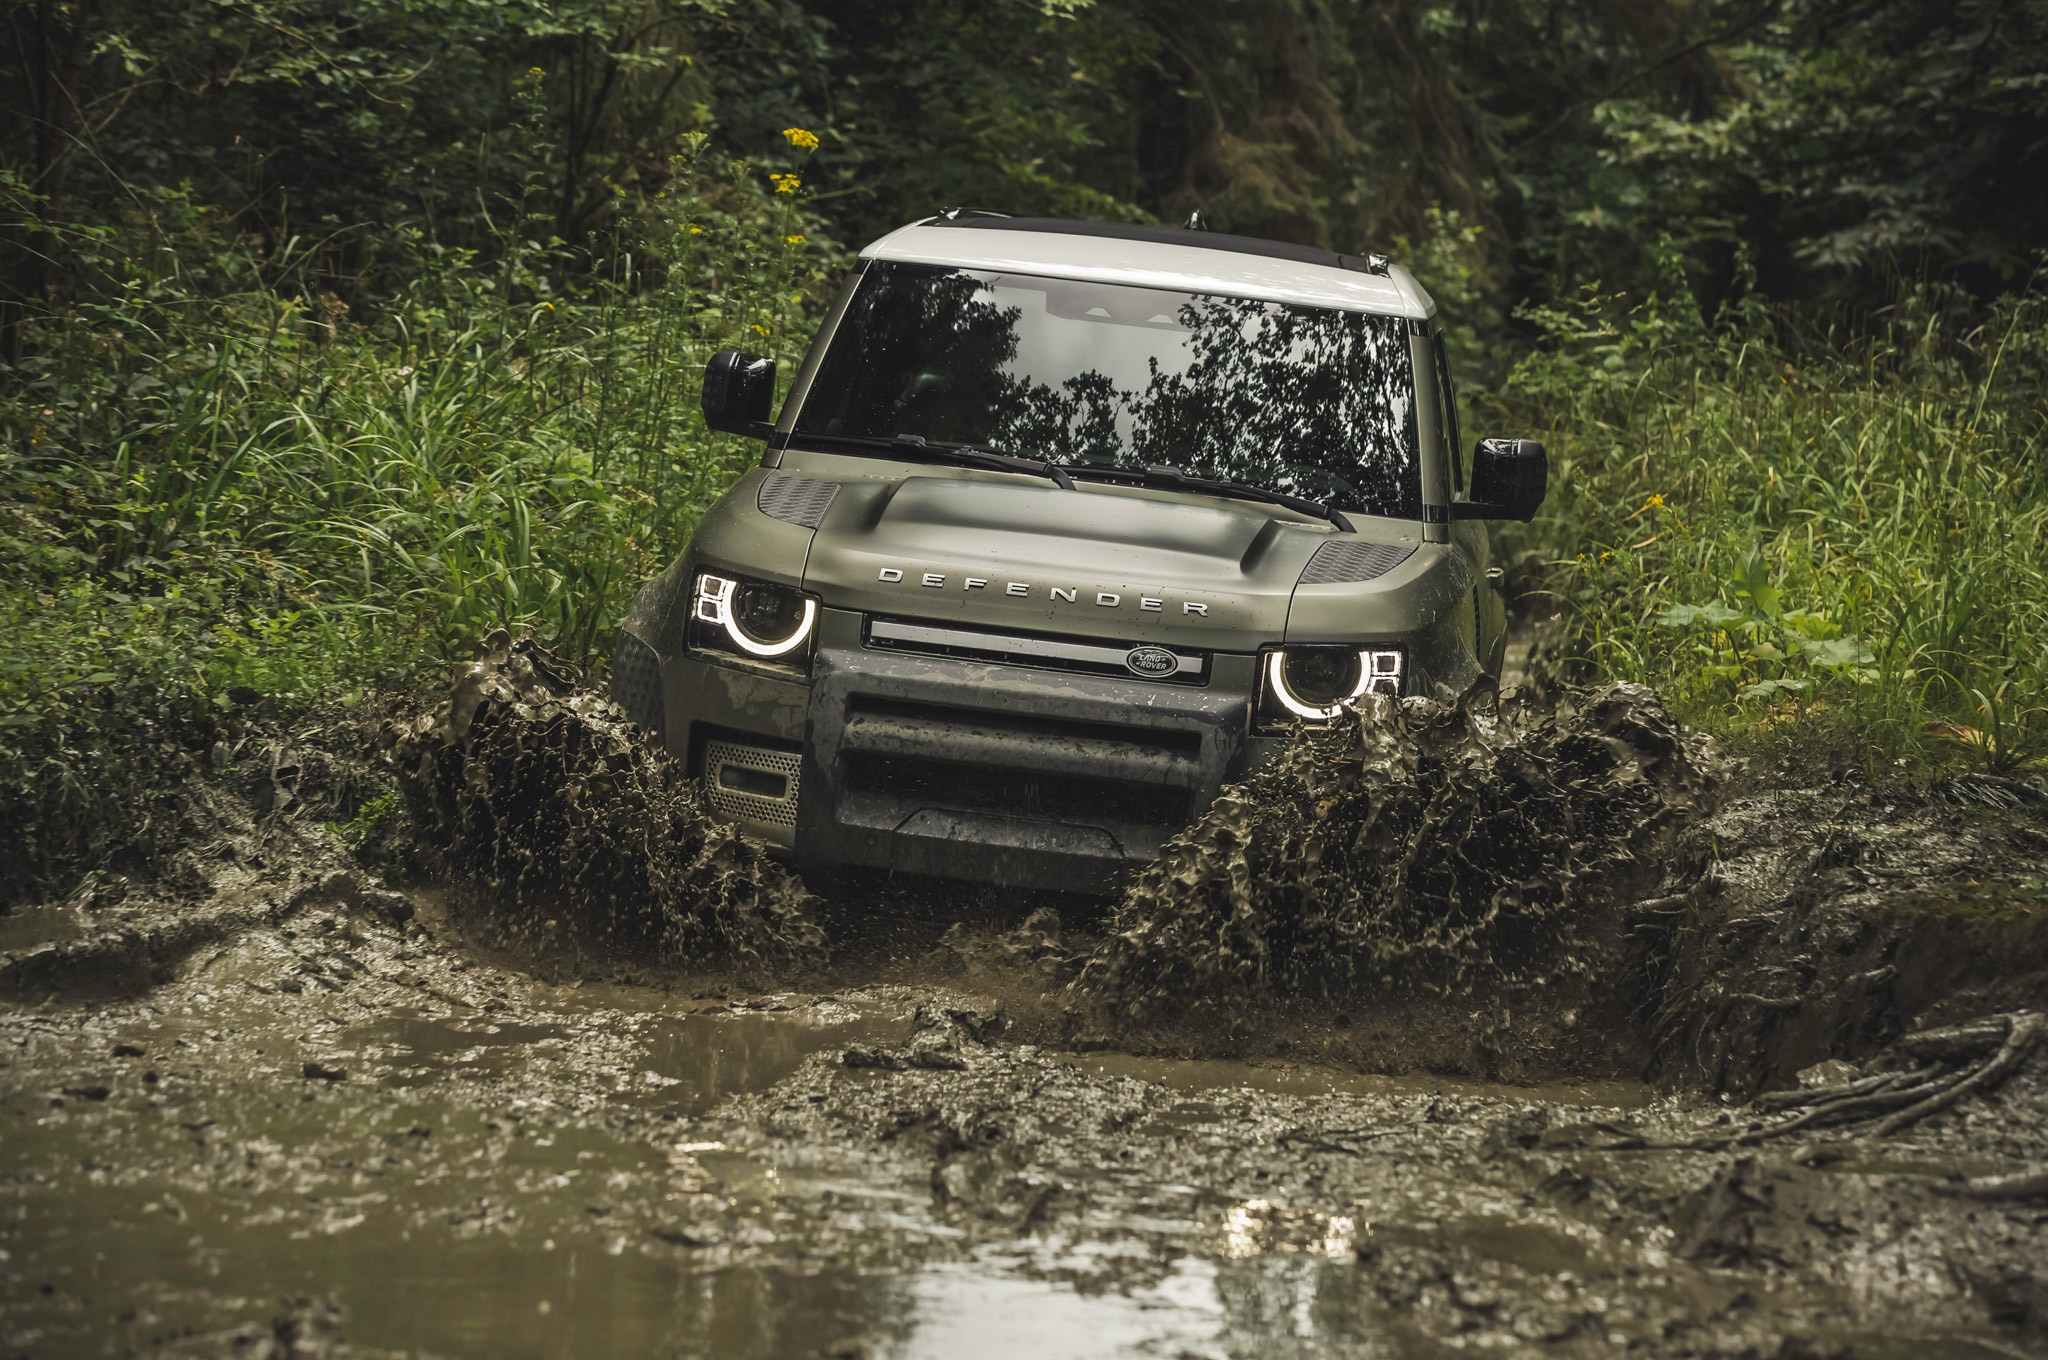 2020 land rover defender 90 off road mud 03